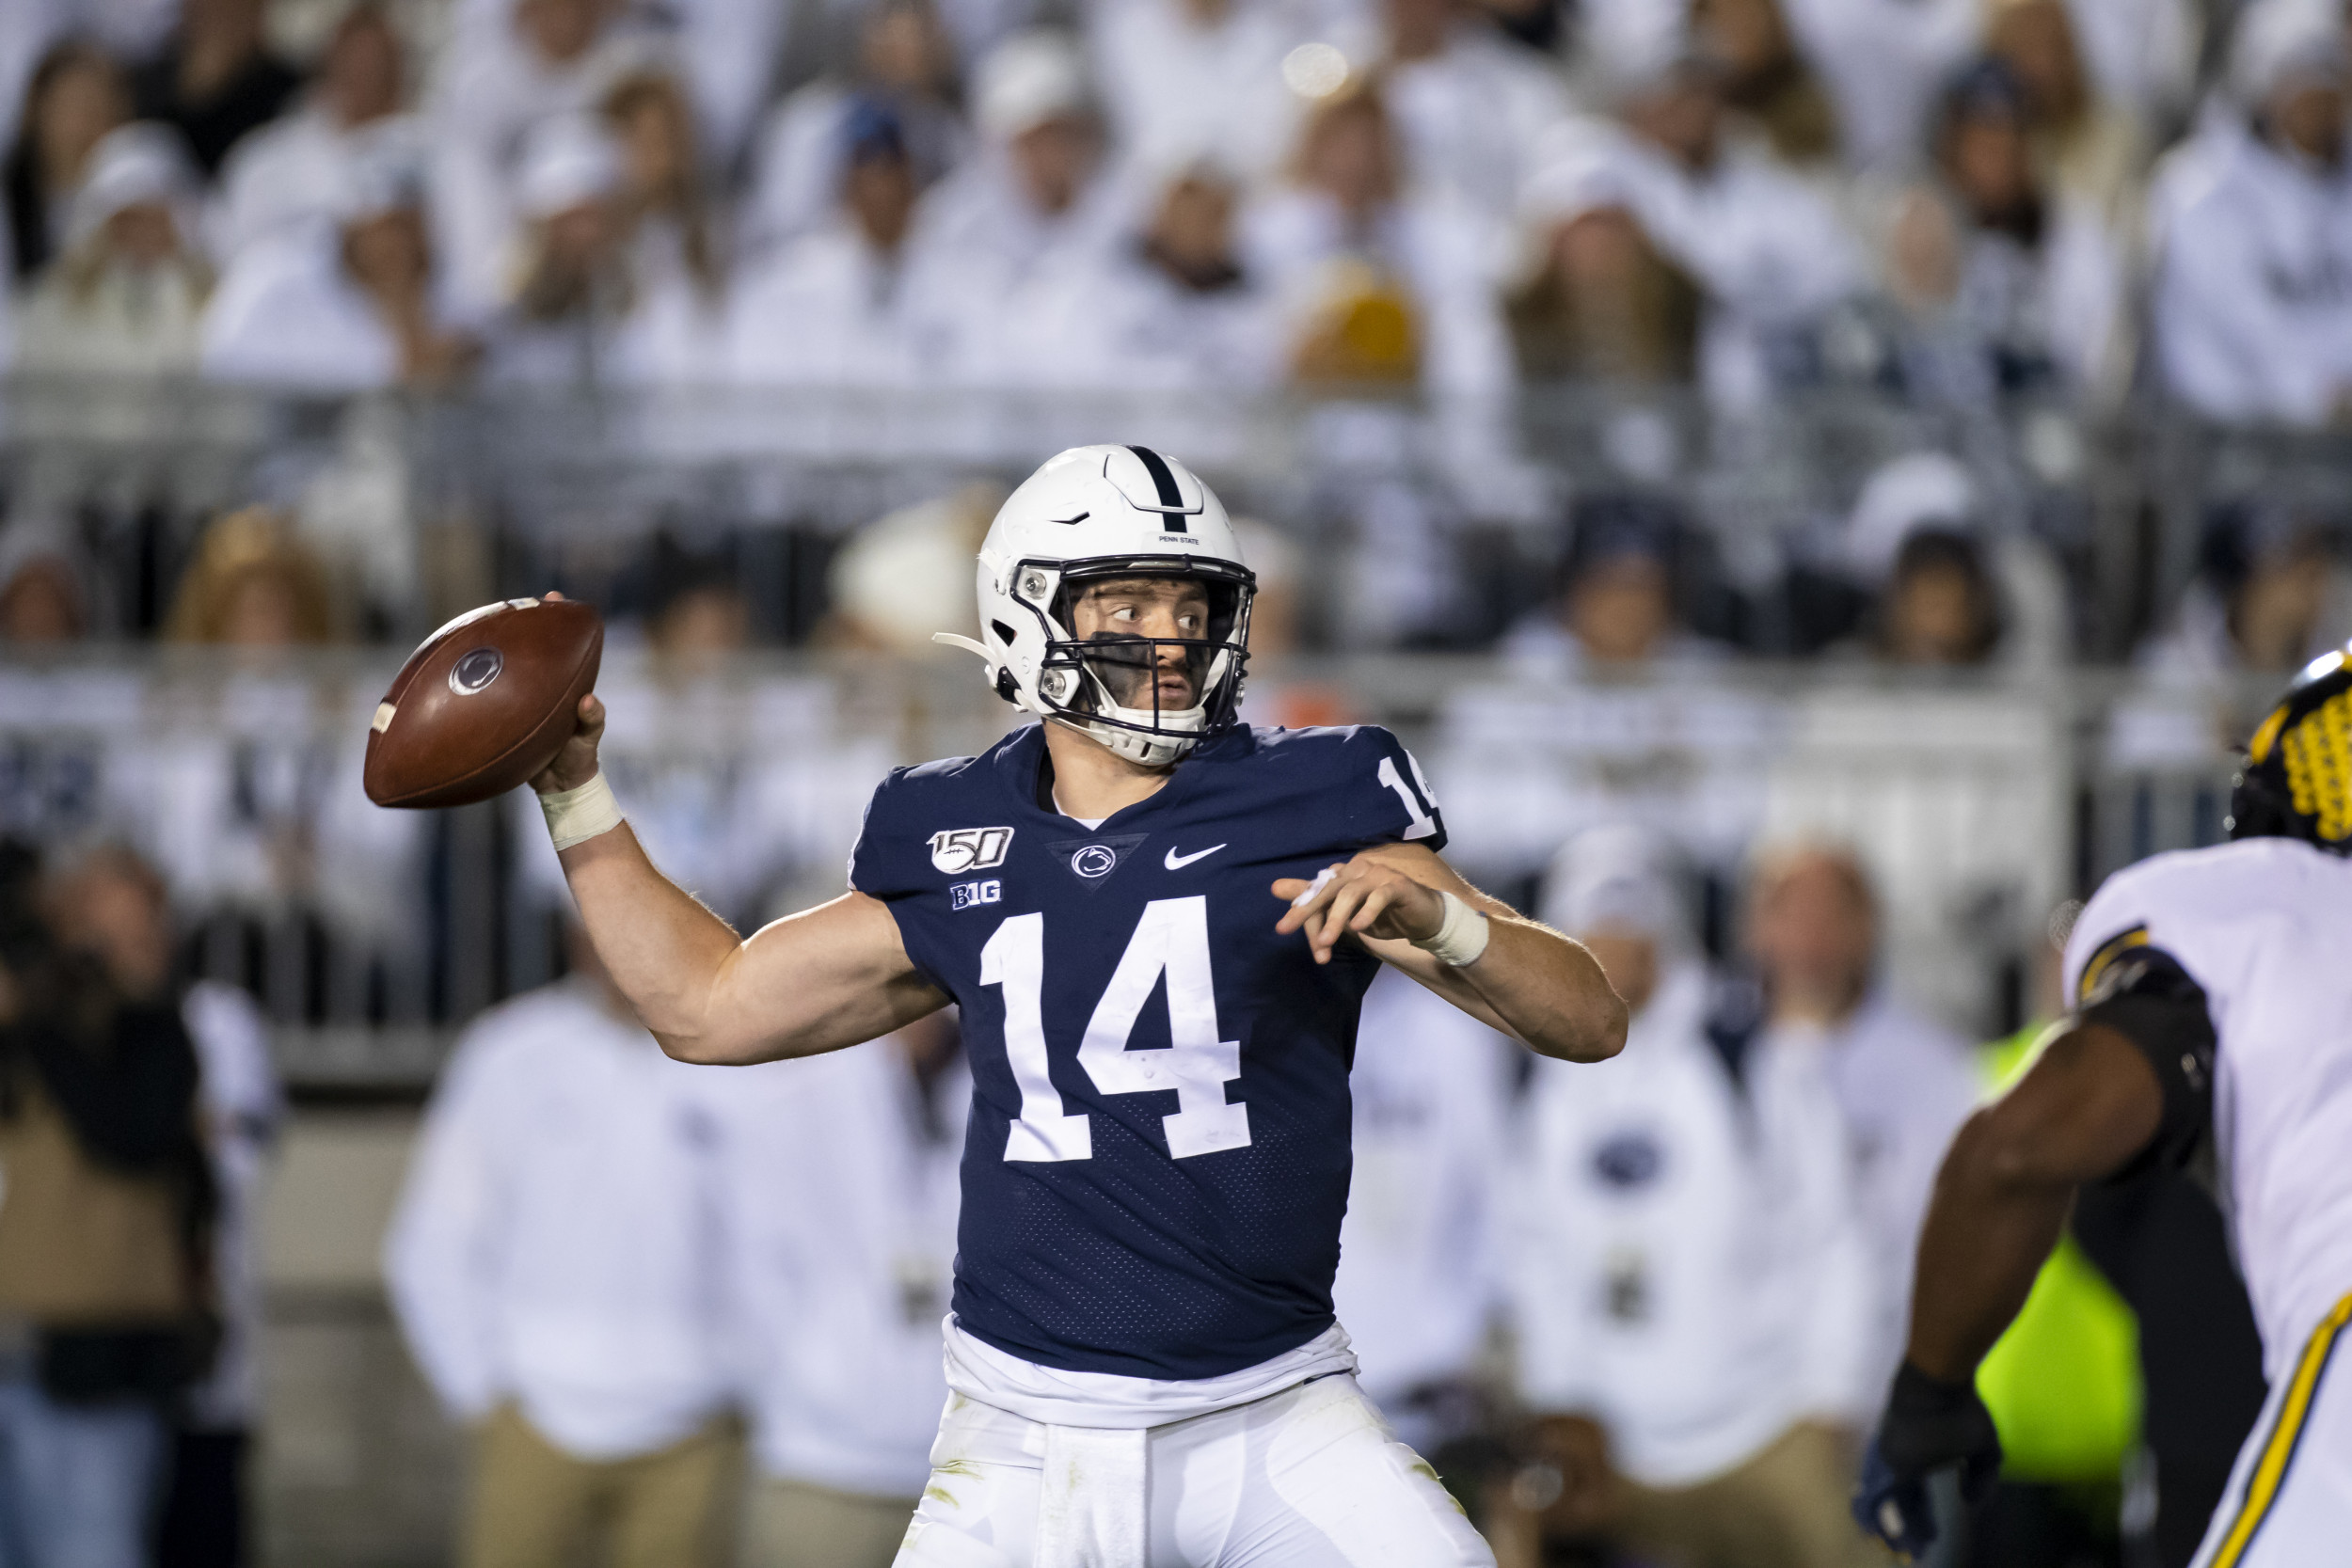 Penn State Home Football Schedule 2020.College Football Tv Schedule 2019 Where To Watch Penn State